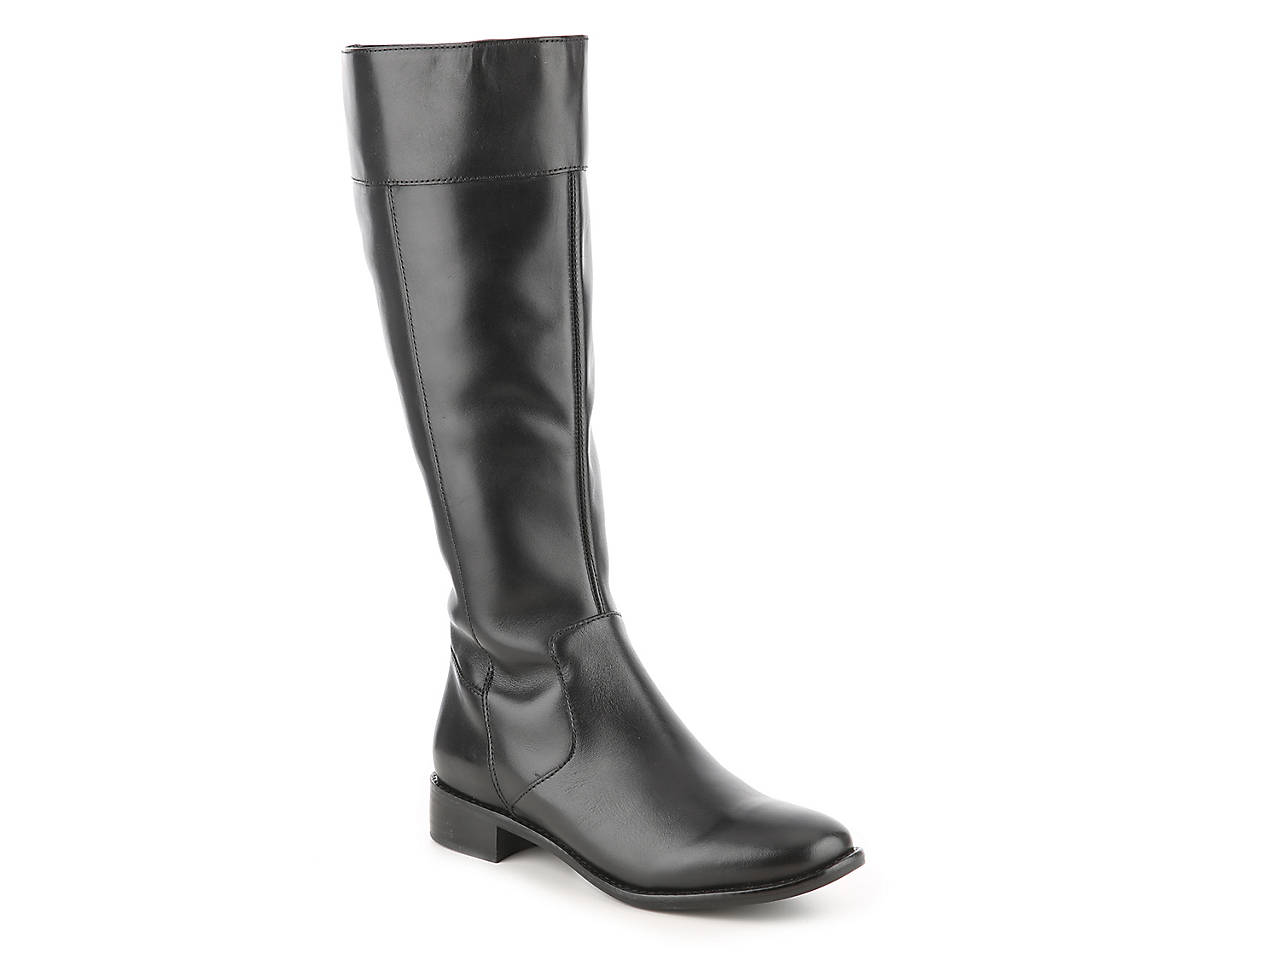 3edf1c75b51 Cole Haan Corinne Riding Boot Women s Shoes